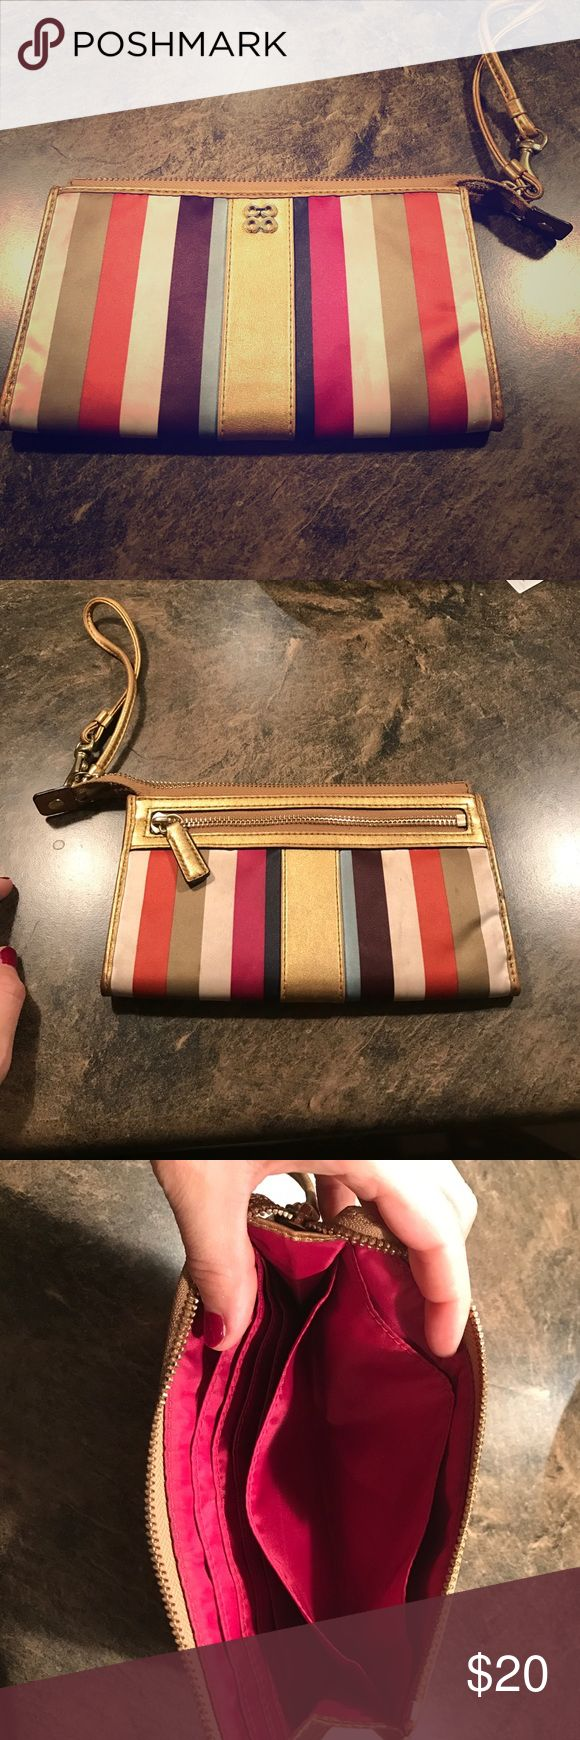 Coach multi color clutch Coach clutch. Used but in good conditions. A little dirty in a few corners where the ivory color is but overall in good shape Coach Bags Clutches & Wristlets